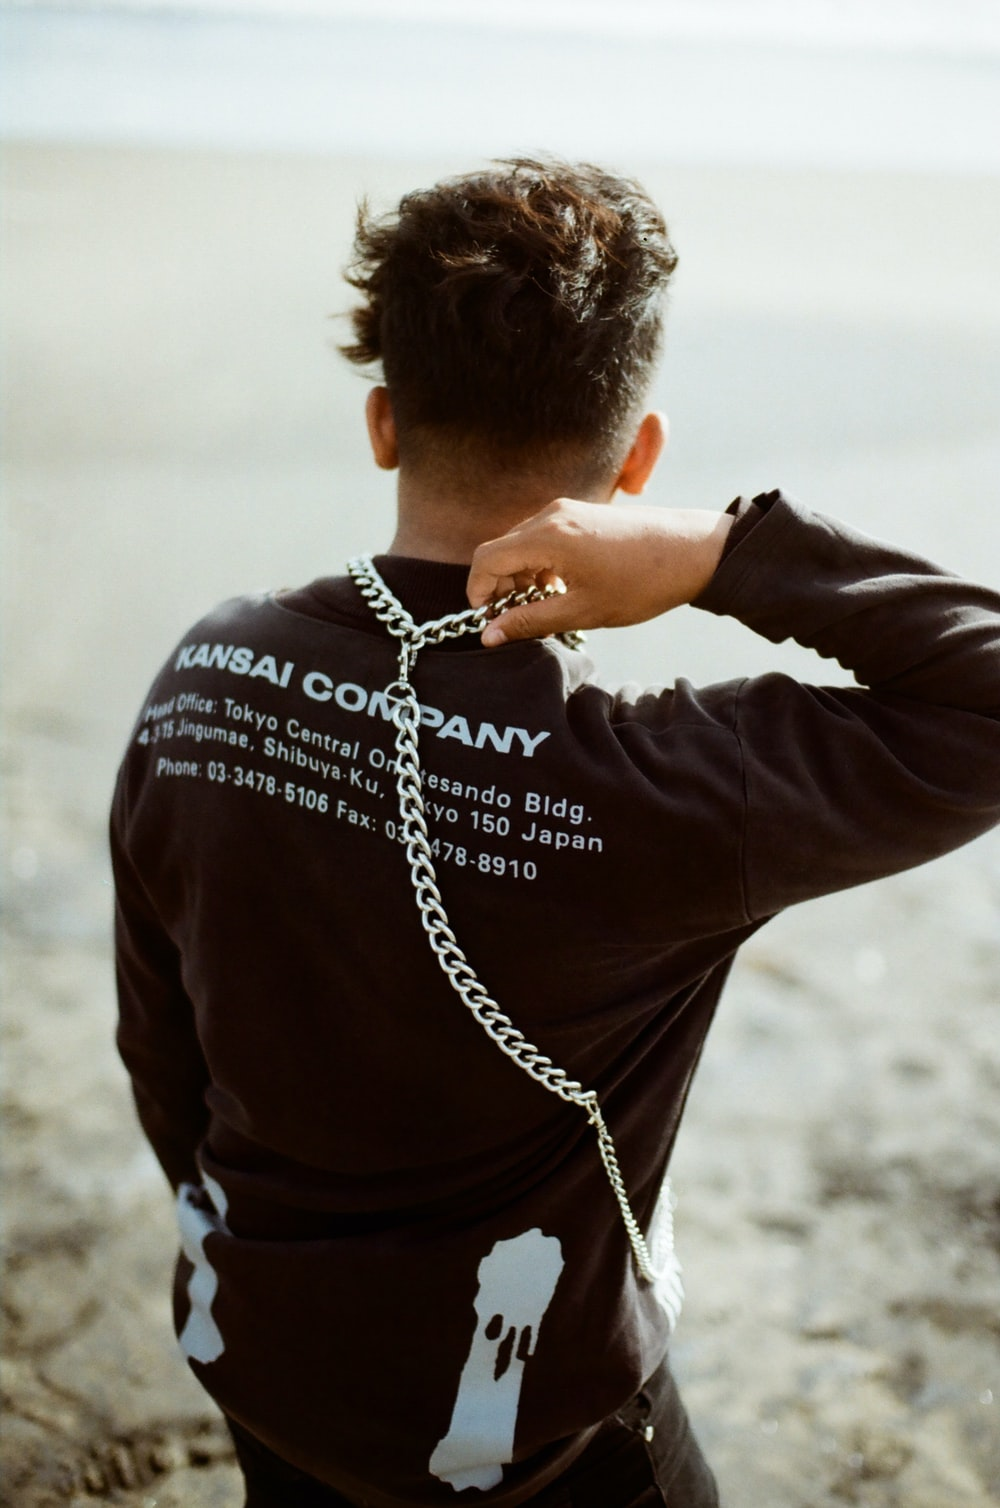 man in black long sleeve shirt wearing silver chain necklace